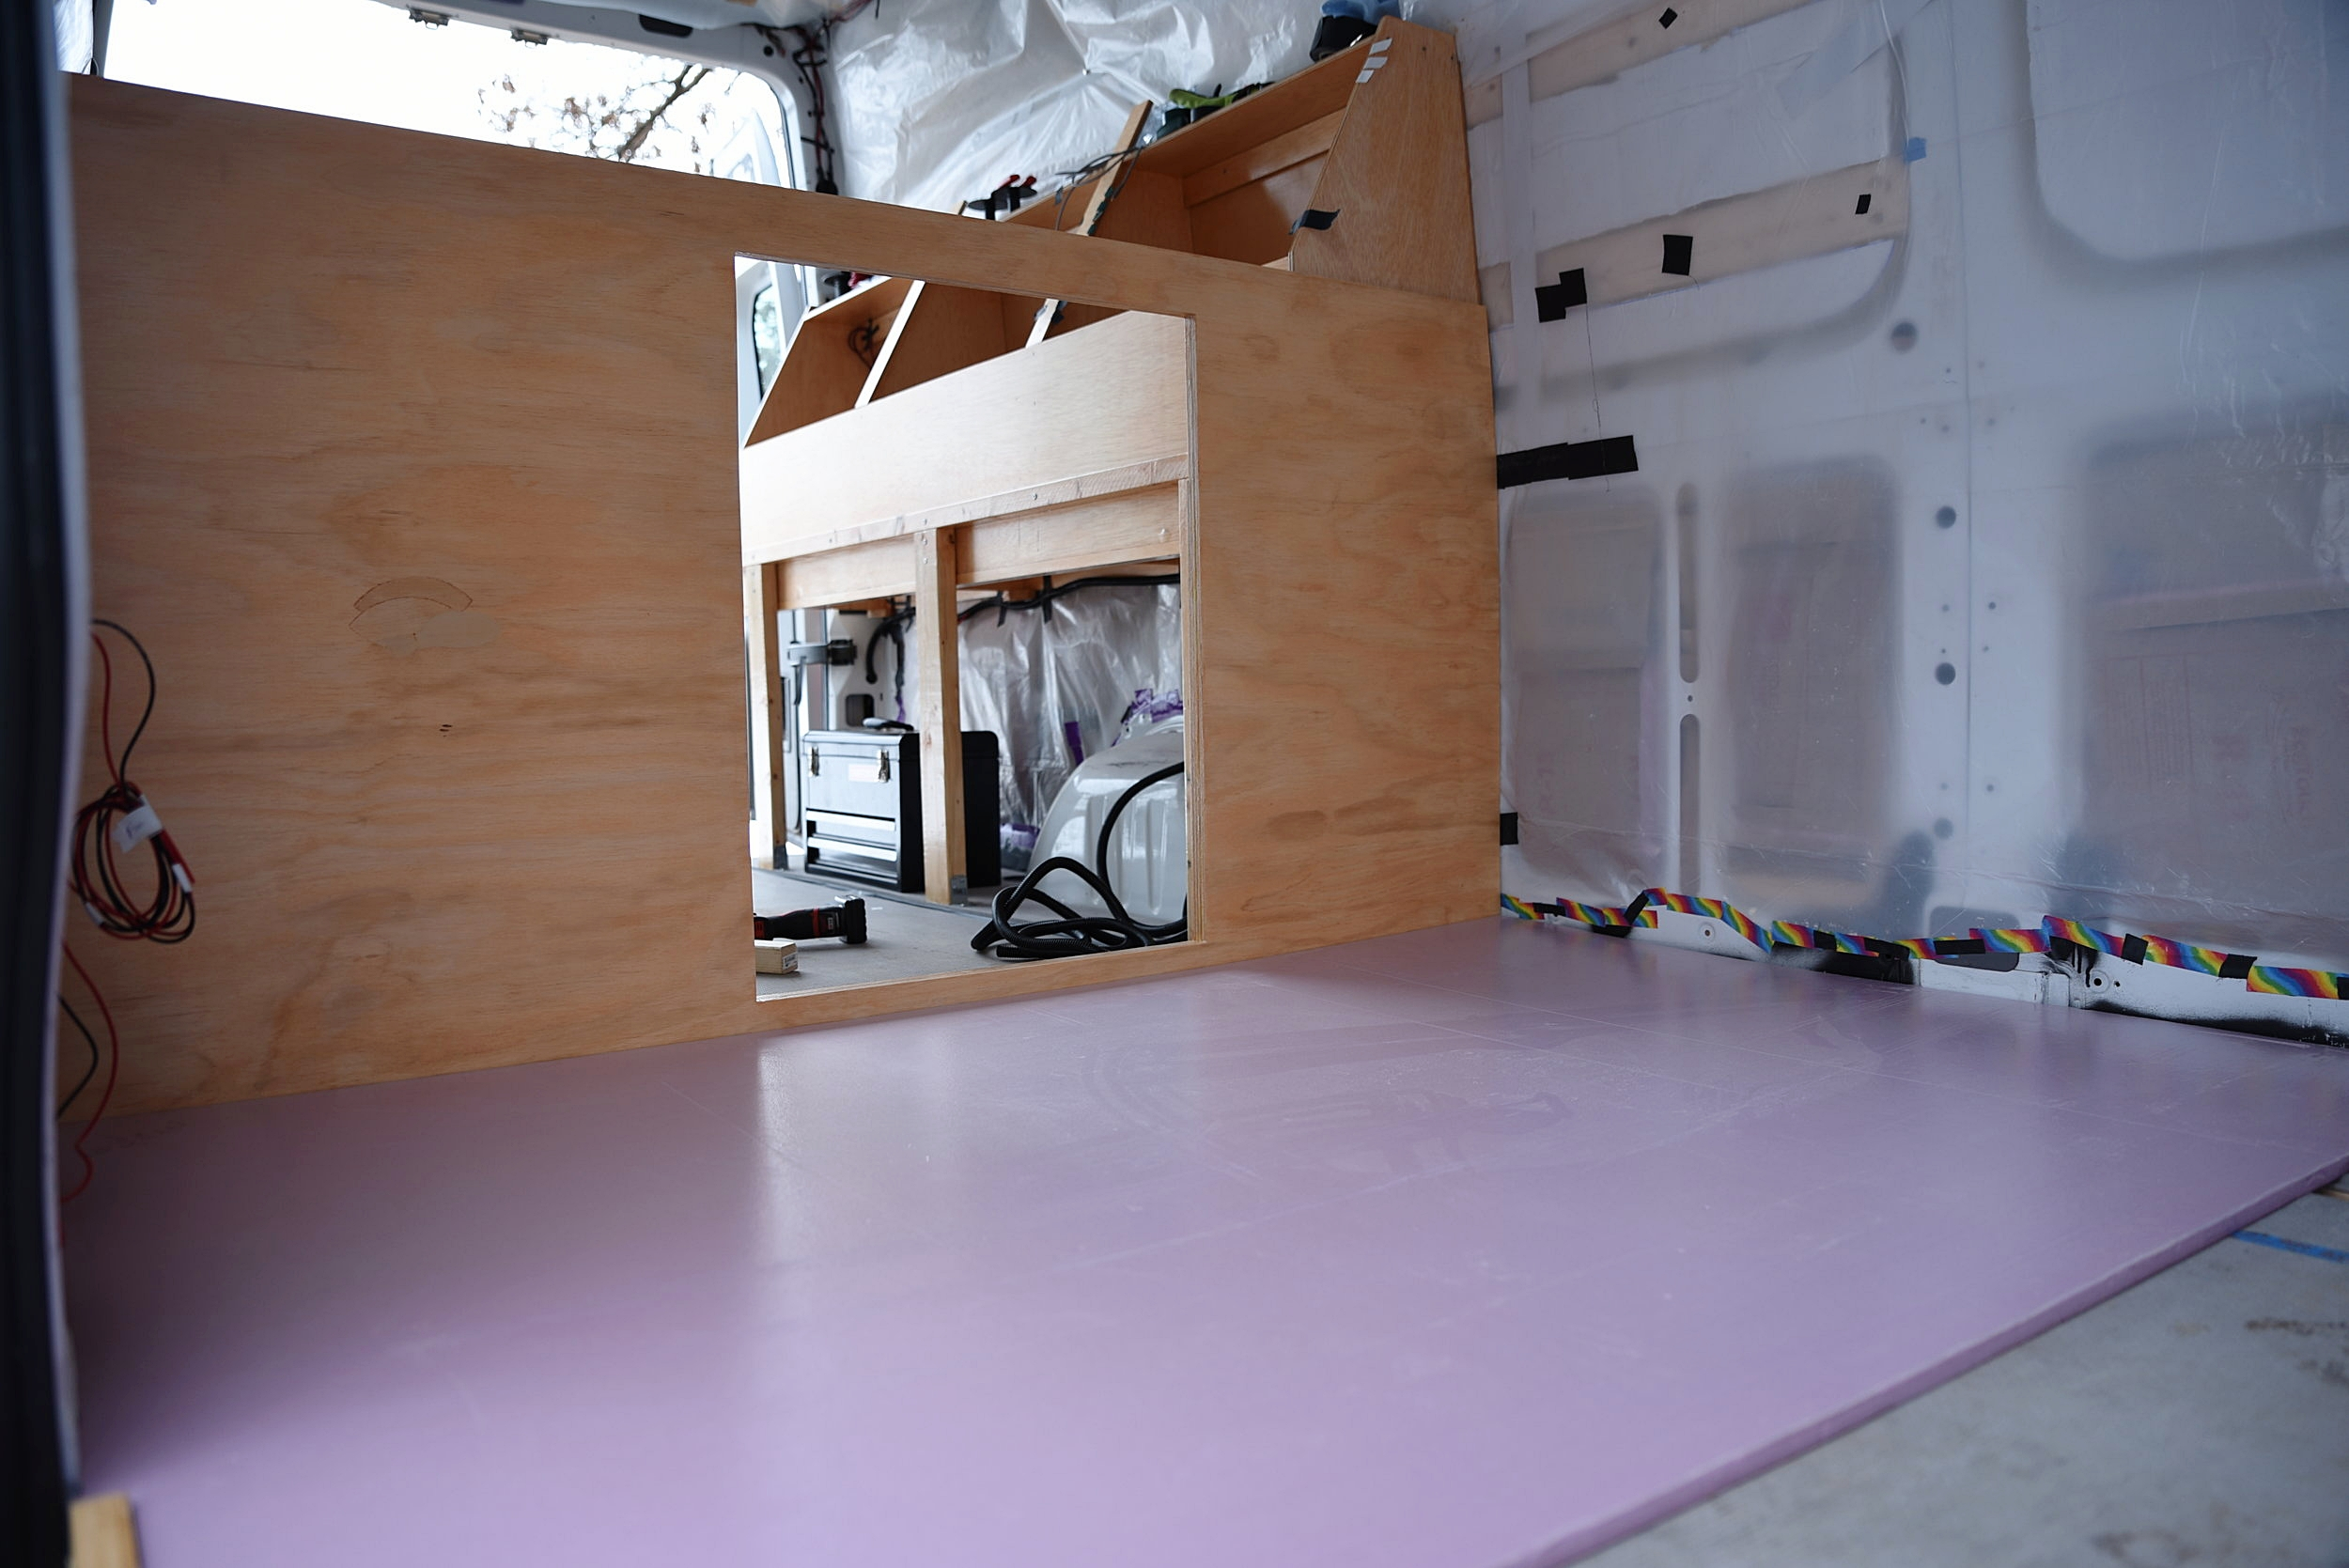 The front of the bed platform front ready to receive the double-hinged cabinet door.